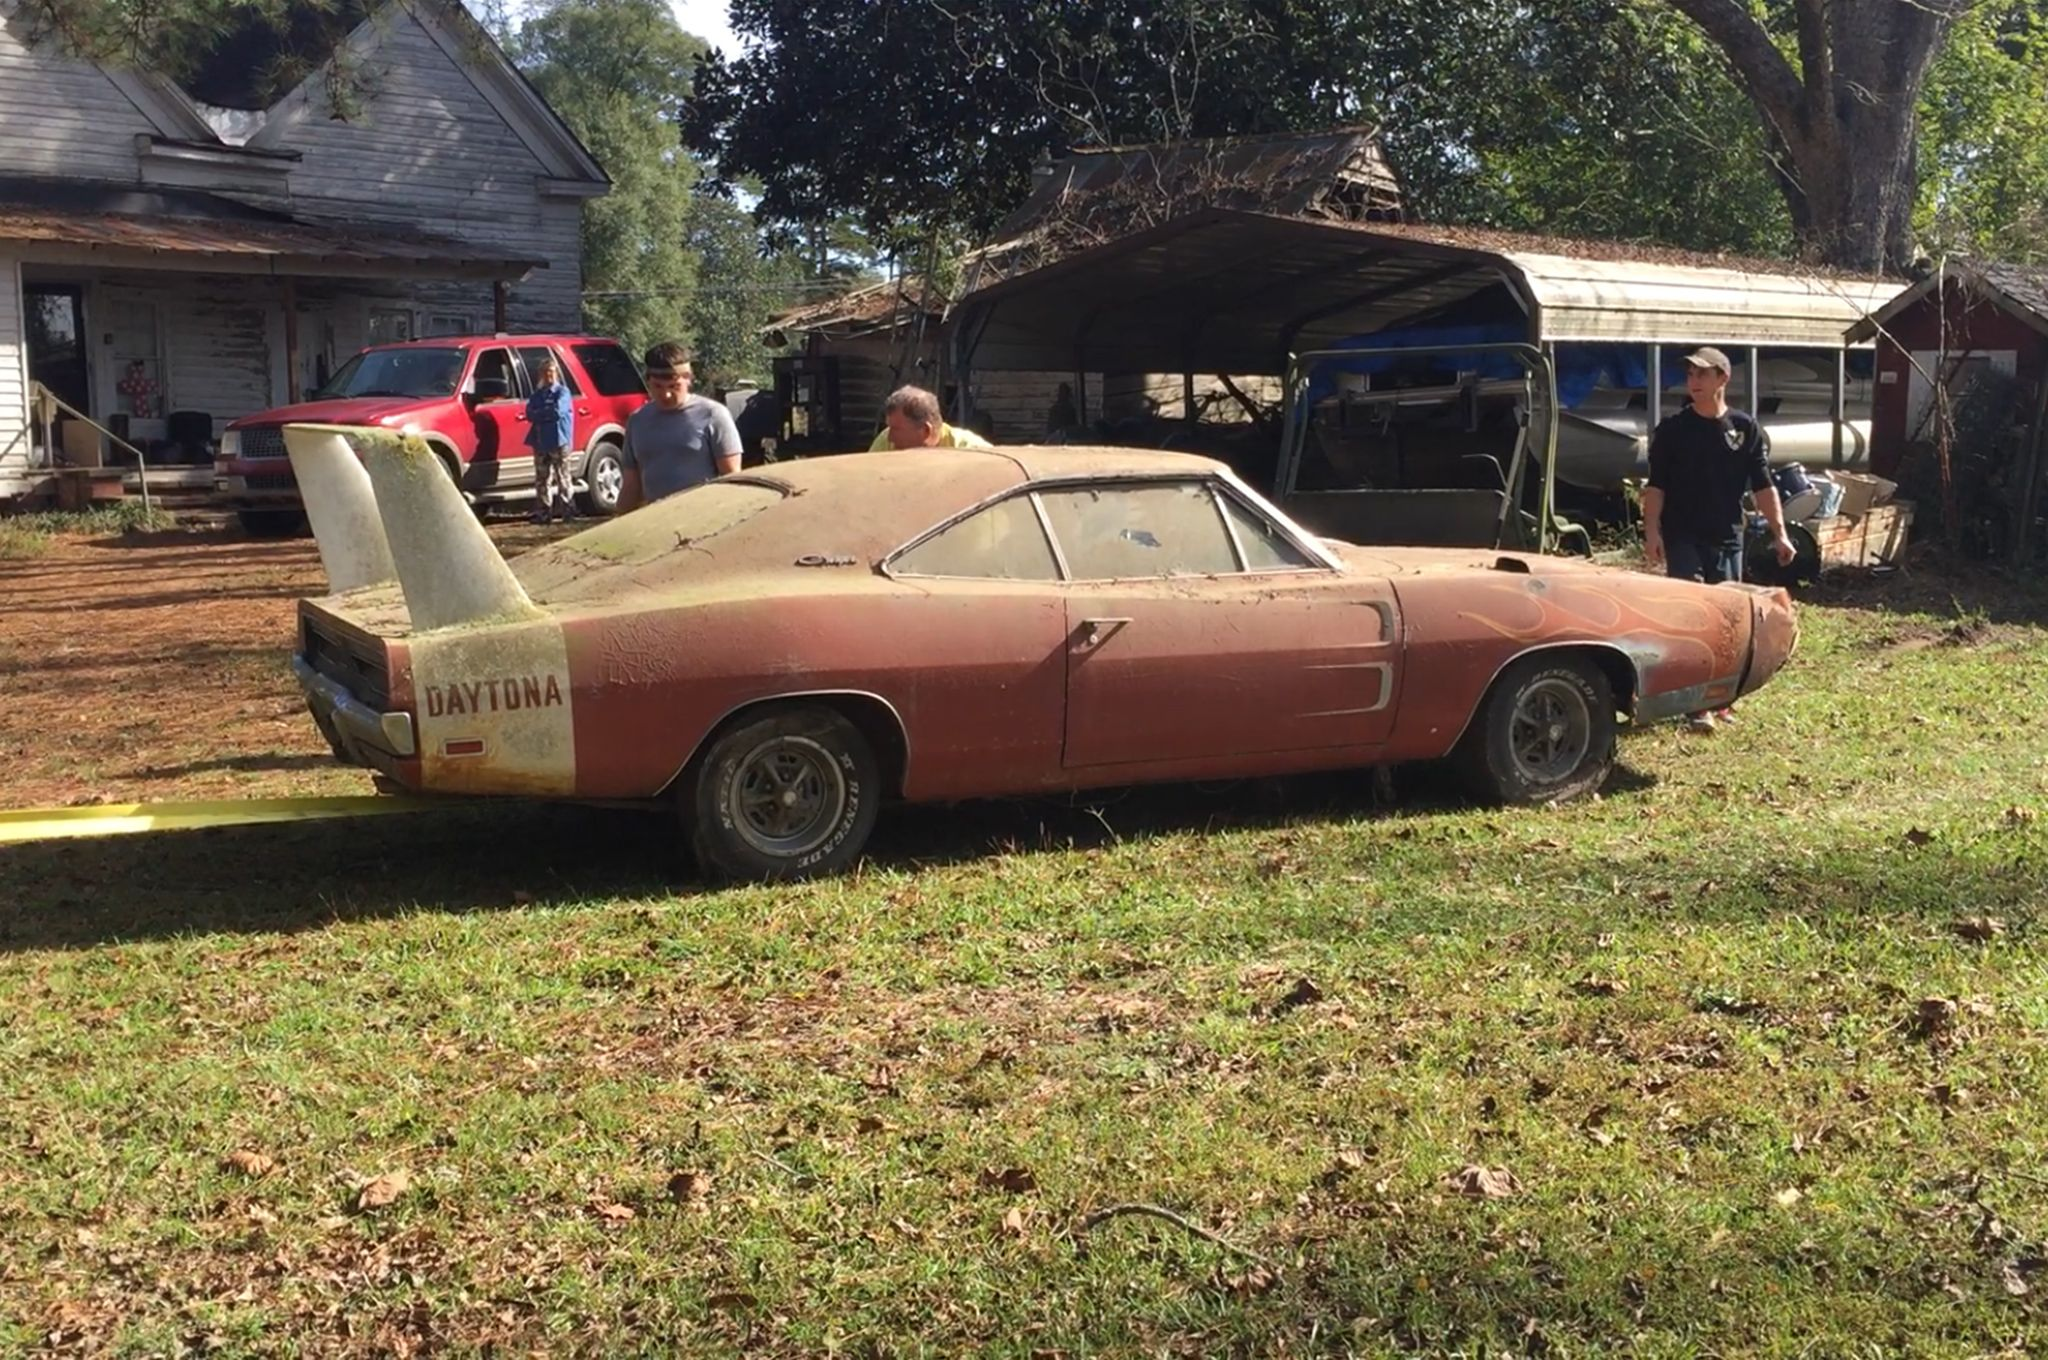 barn-find-1969-dodge-charger-daytona-to-be-auctioned-for-the-highest-bidder_4